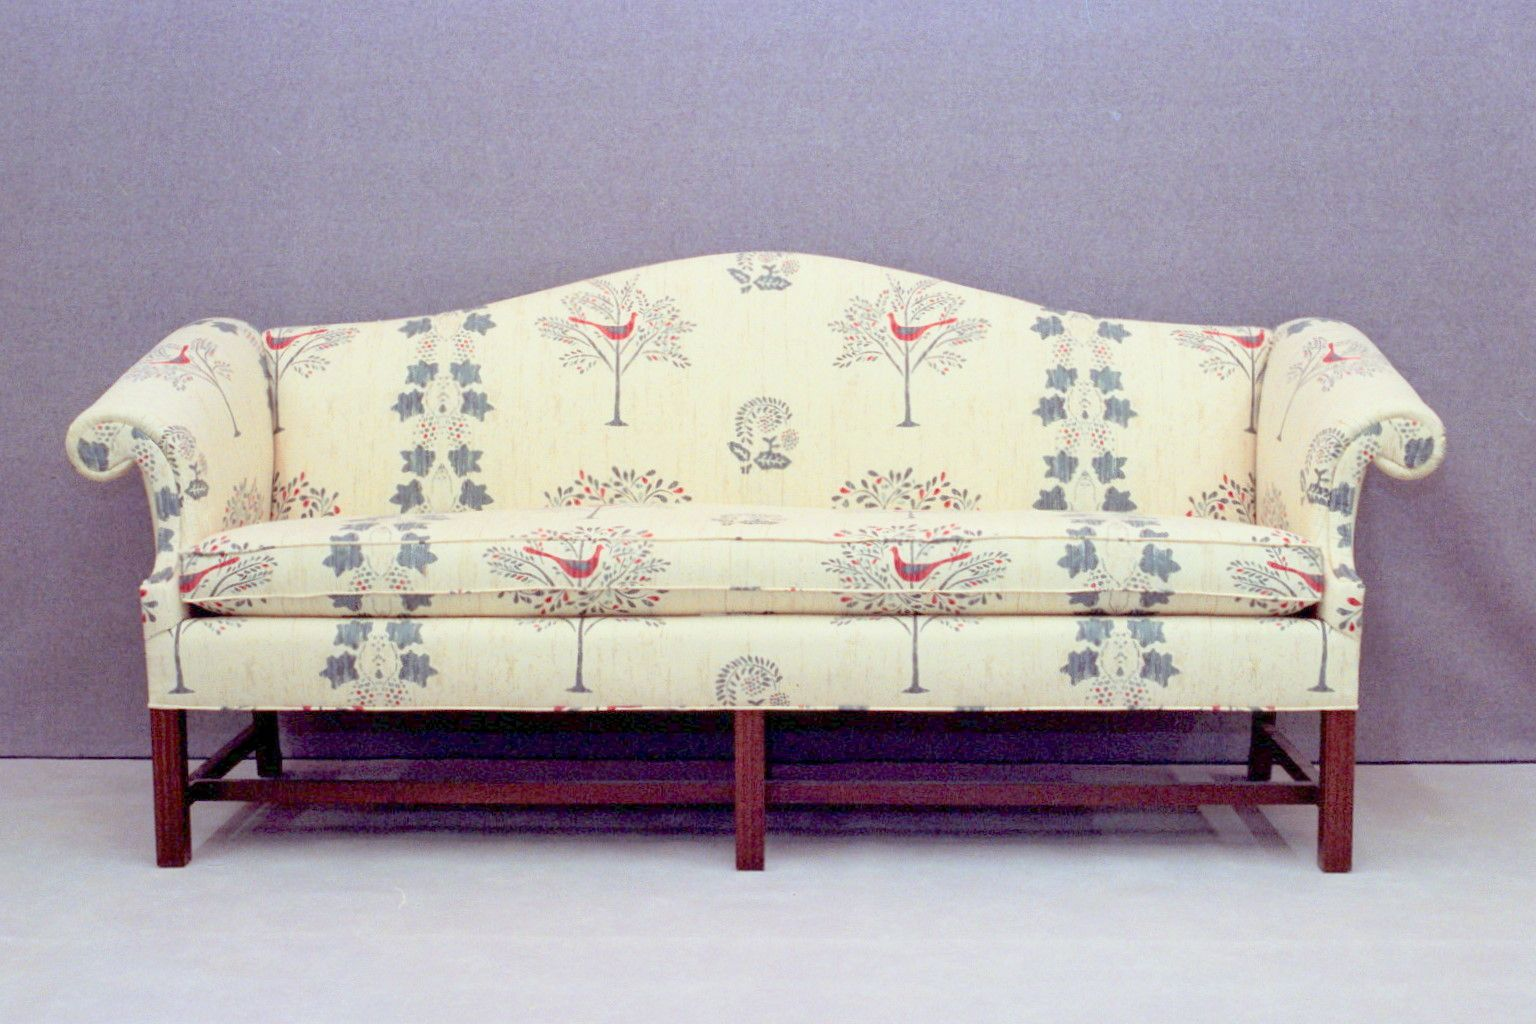 Miraculous Buy A Hand Crafted 1790 Chippendale Sofa Made To Order From Machost Co Dining Chair Design Ideas Machostcouk